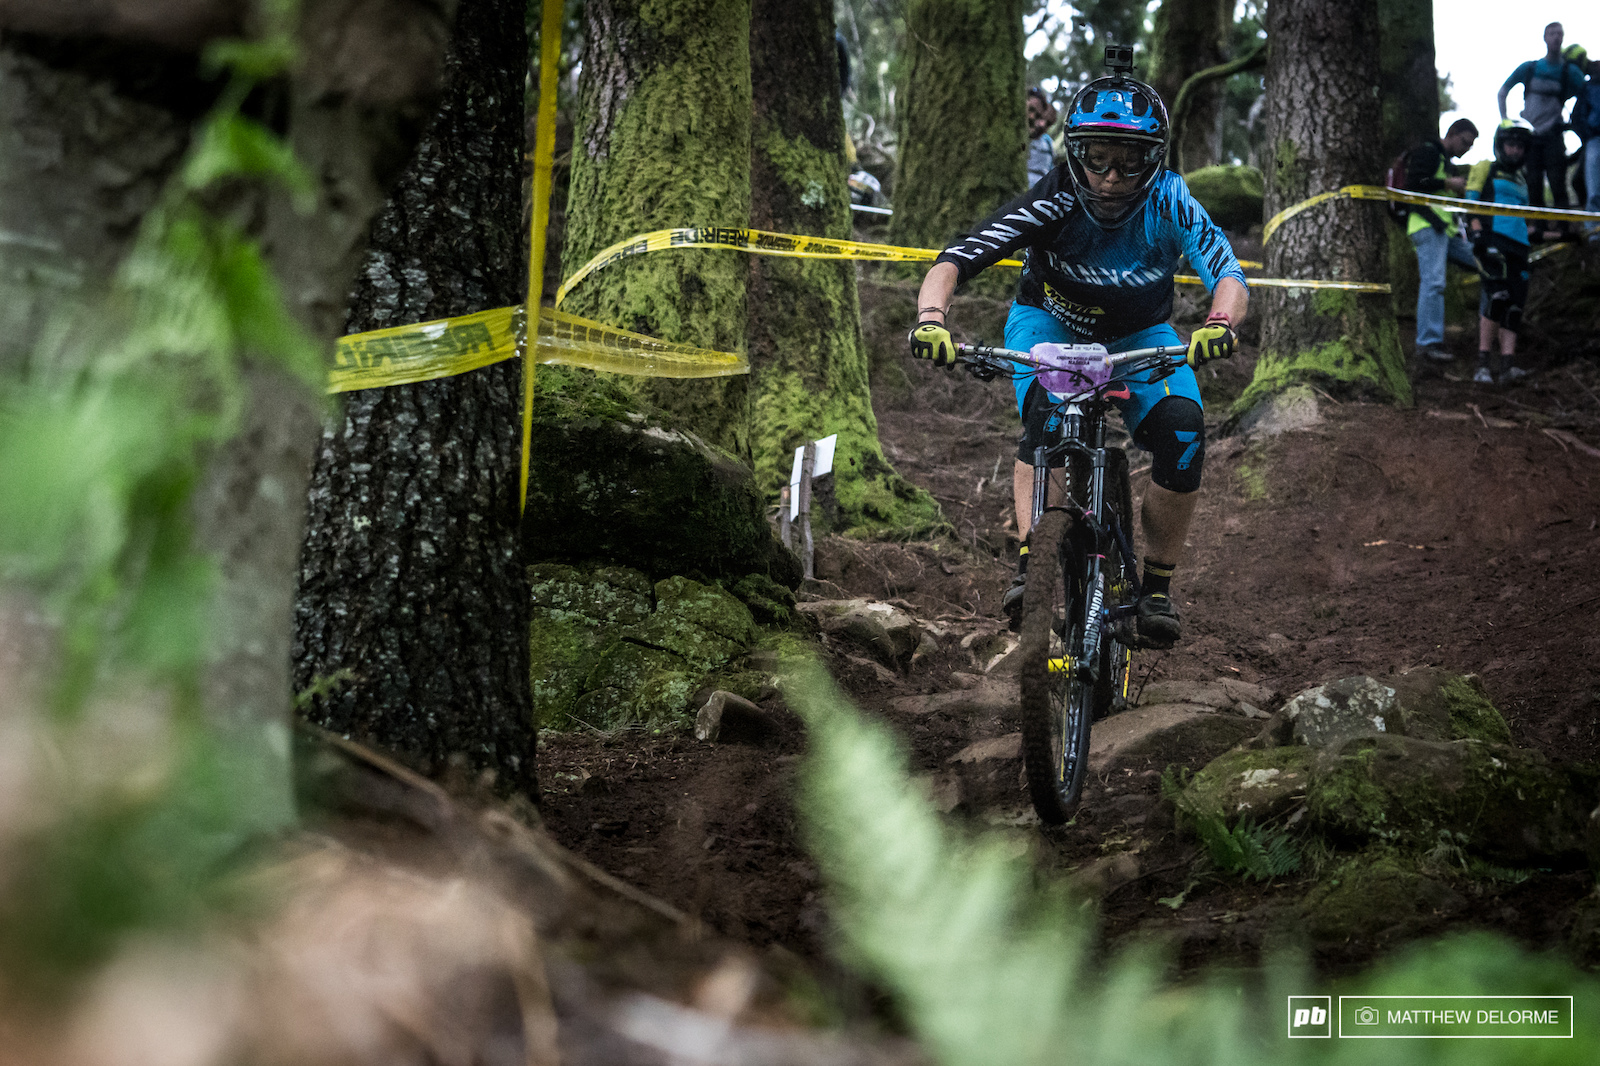 Ines Thoma navigating the steeps of stage six with no problems.